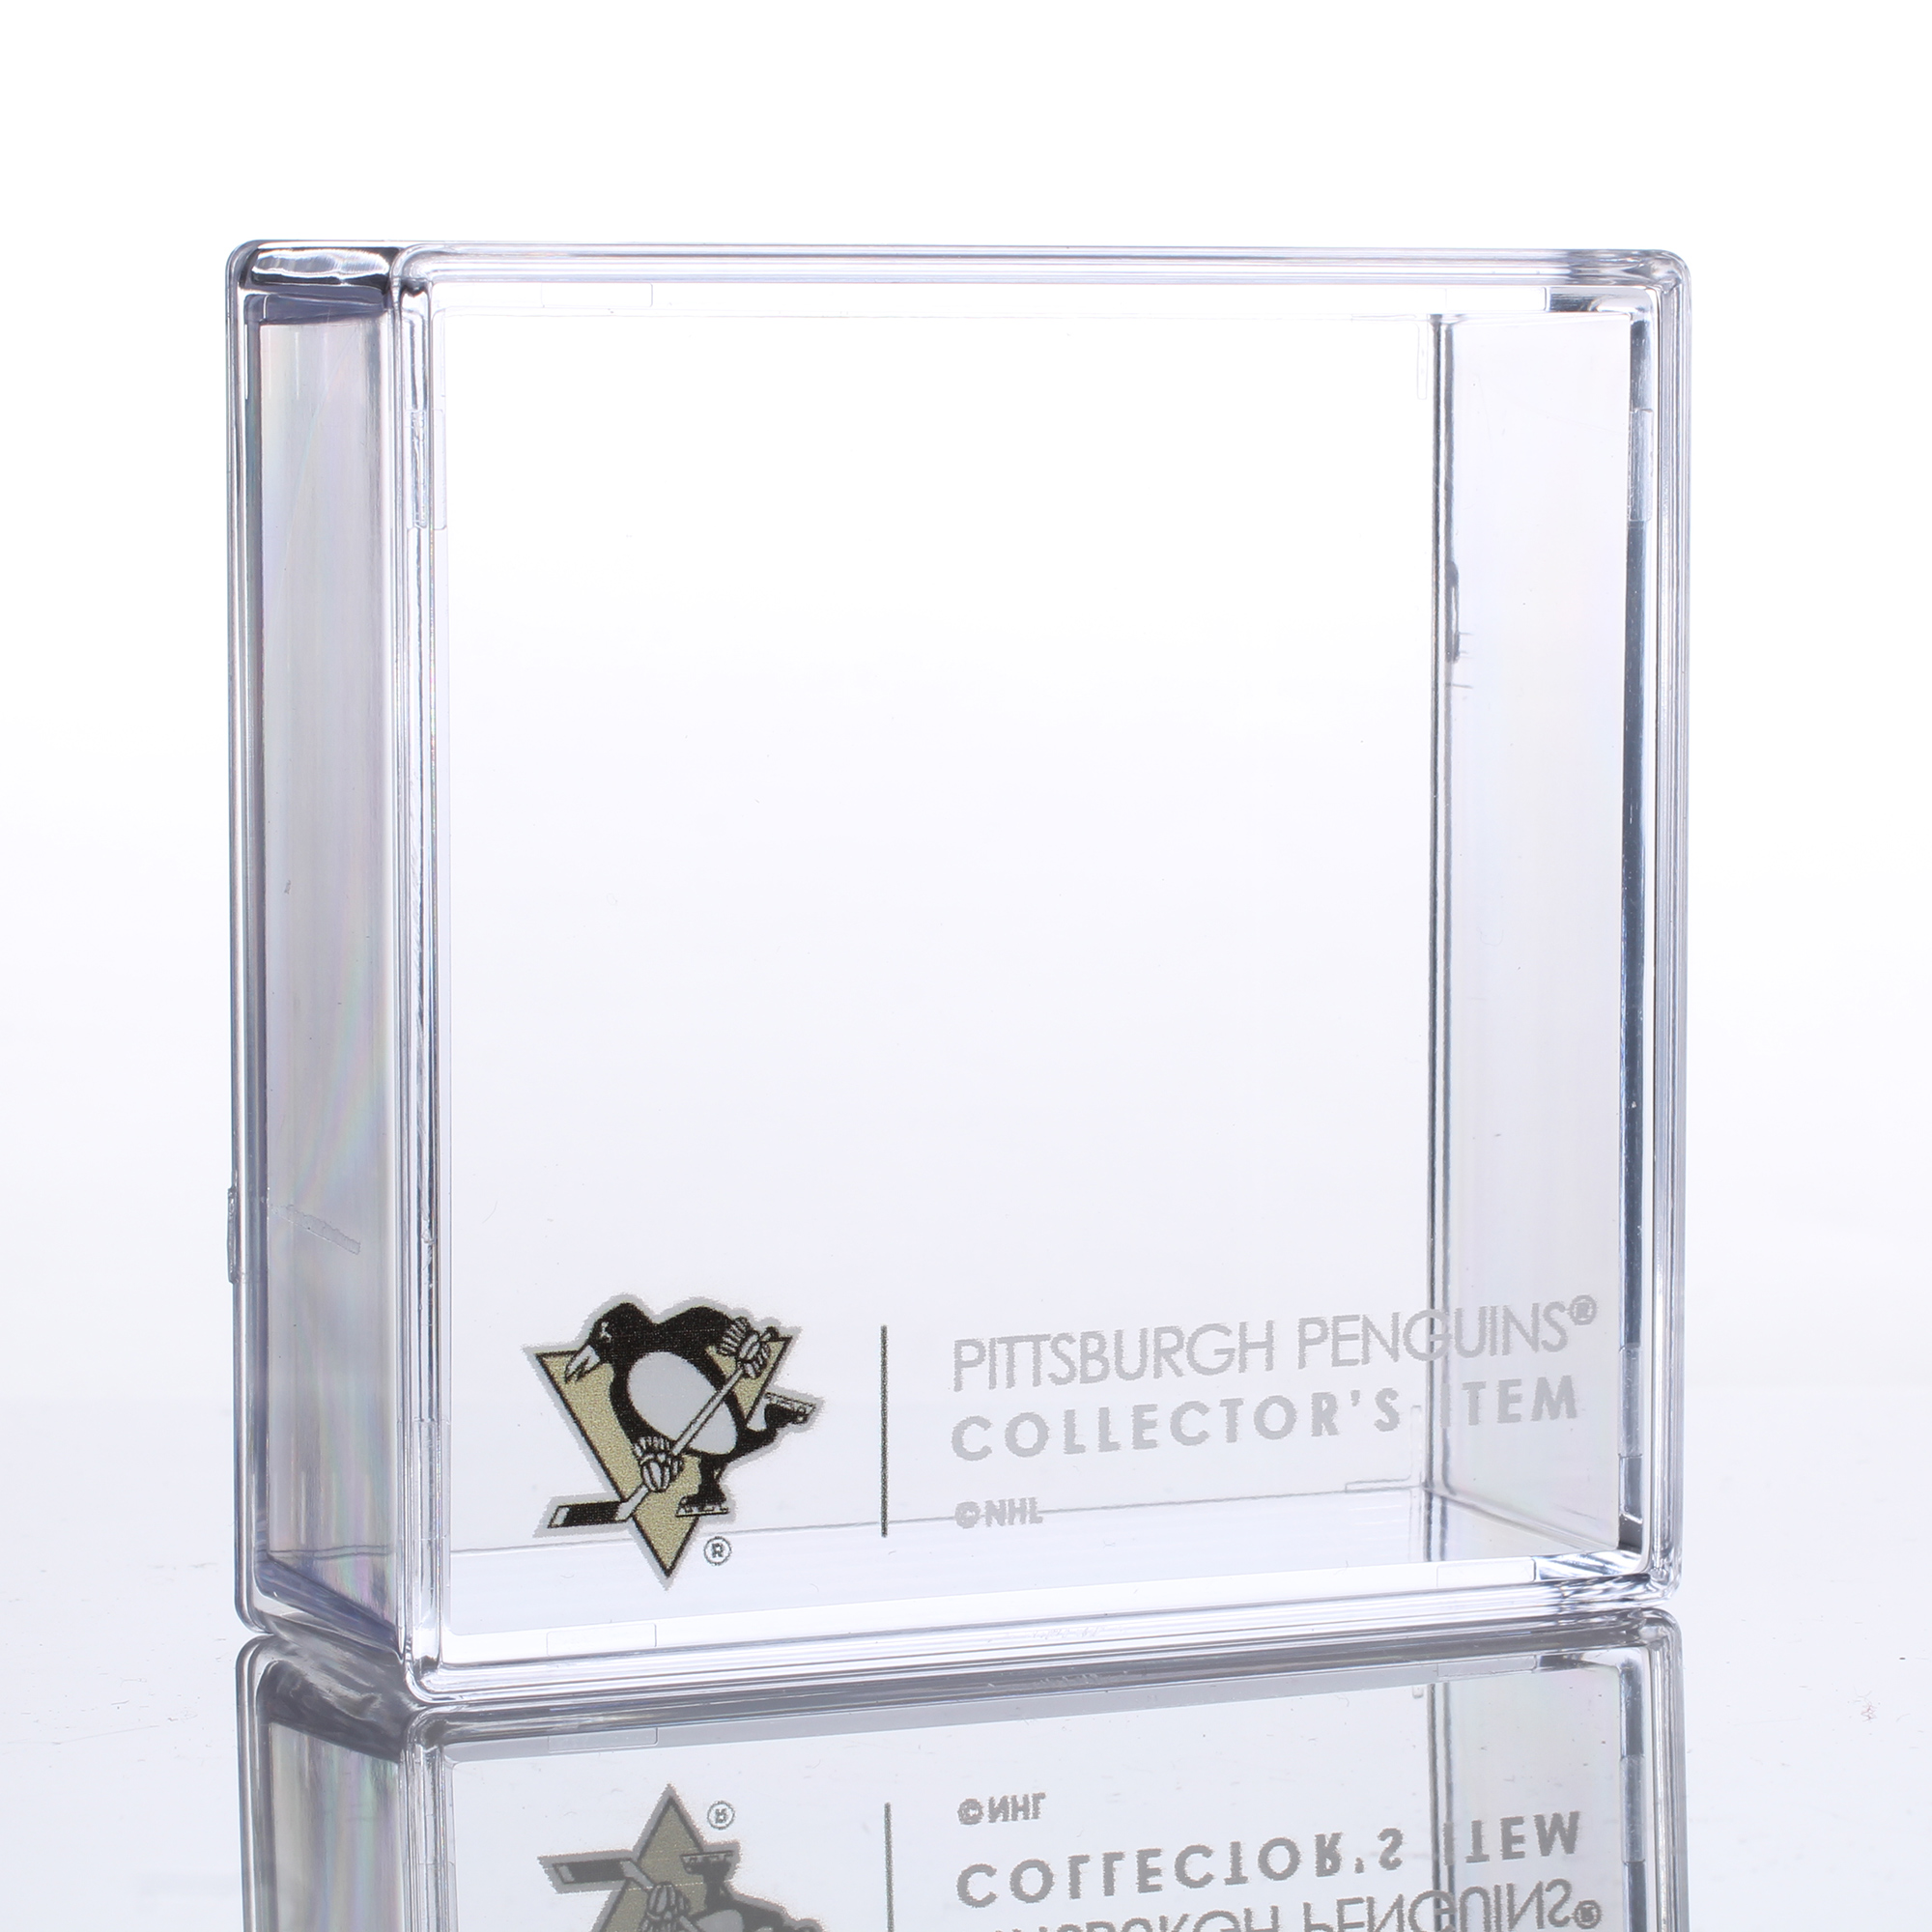 Pittsburgh Penguins Sher-Wood Puck Holder Cube - No Size